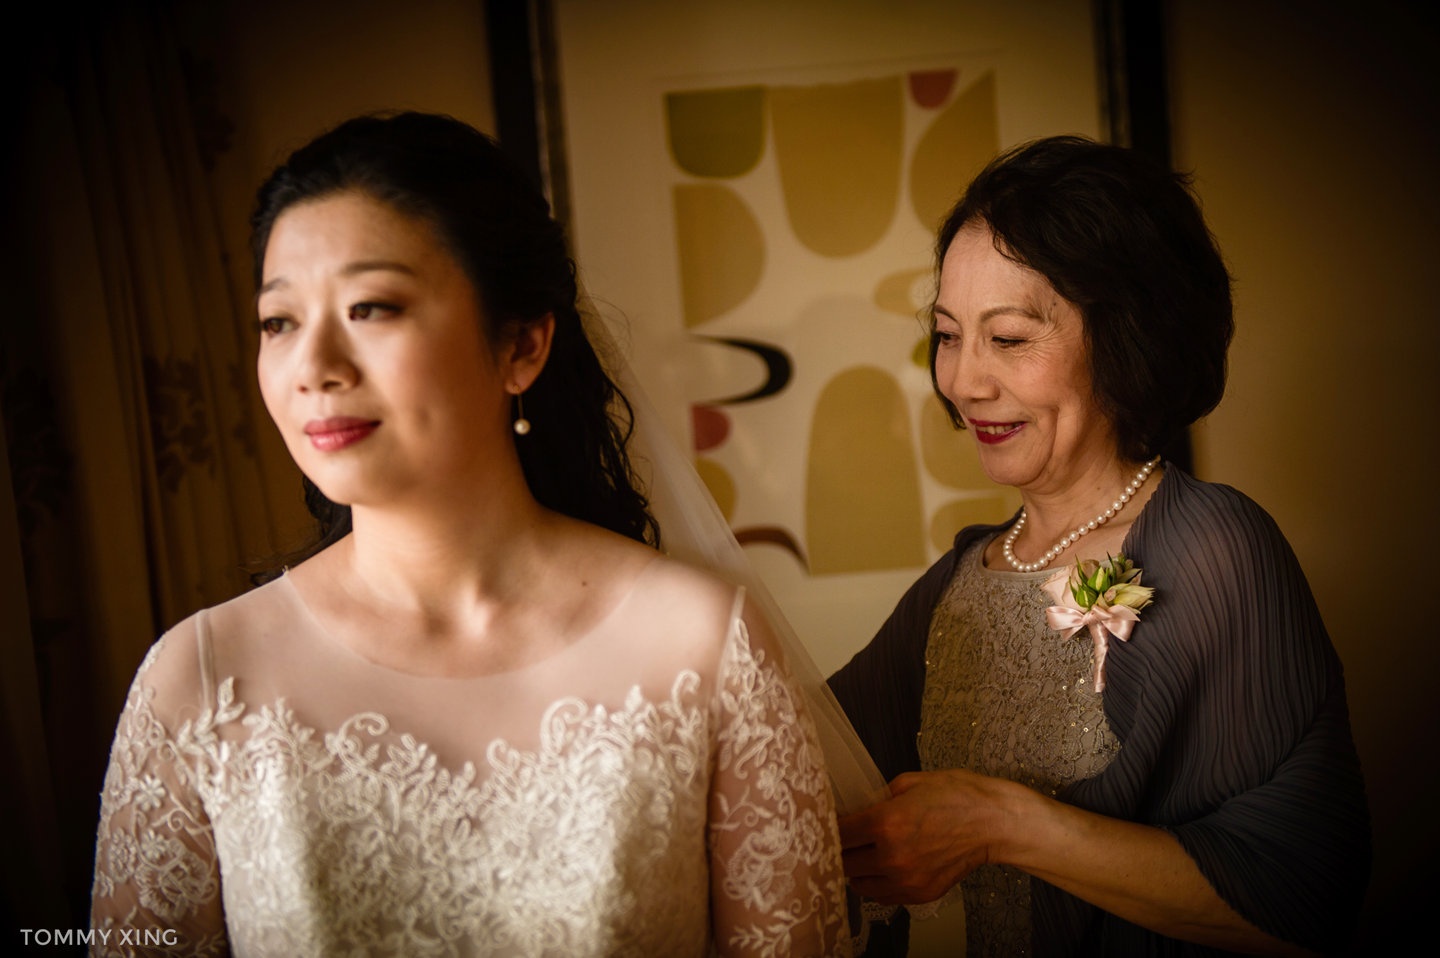 San Francisco Wedding Photography Valley Presbyterian Church WEDDING Tommy Xing Photography 洛杉矶旧金山婚礼婚纱照摄影师055.jpg